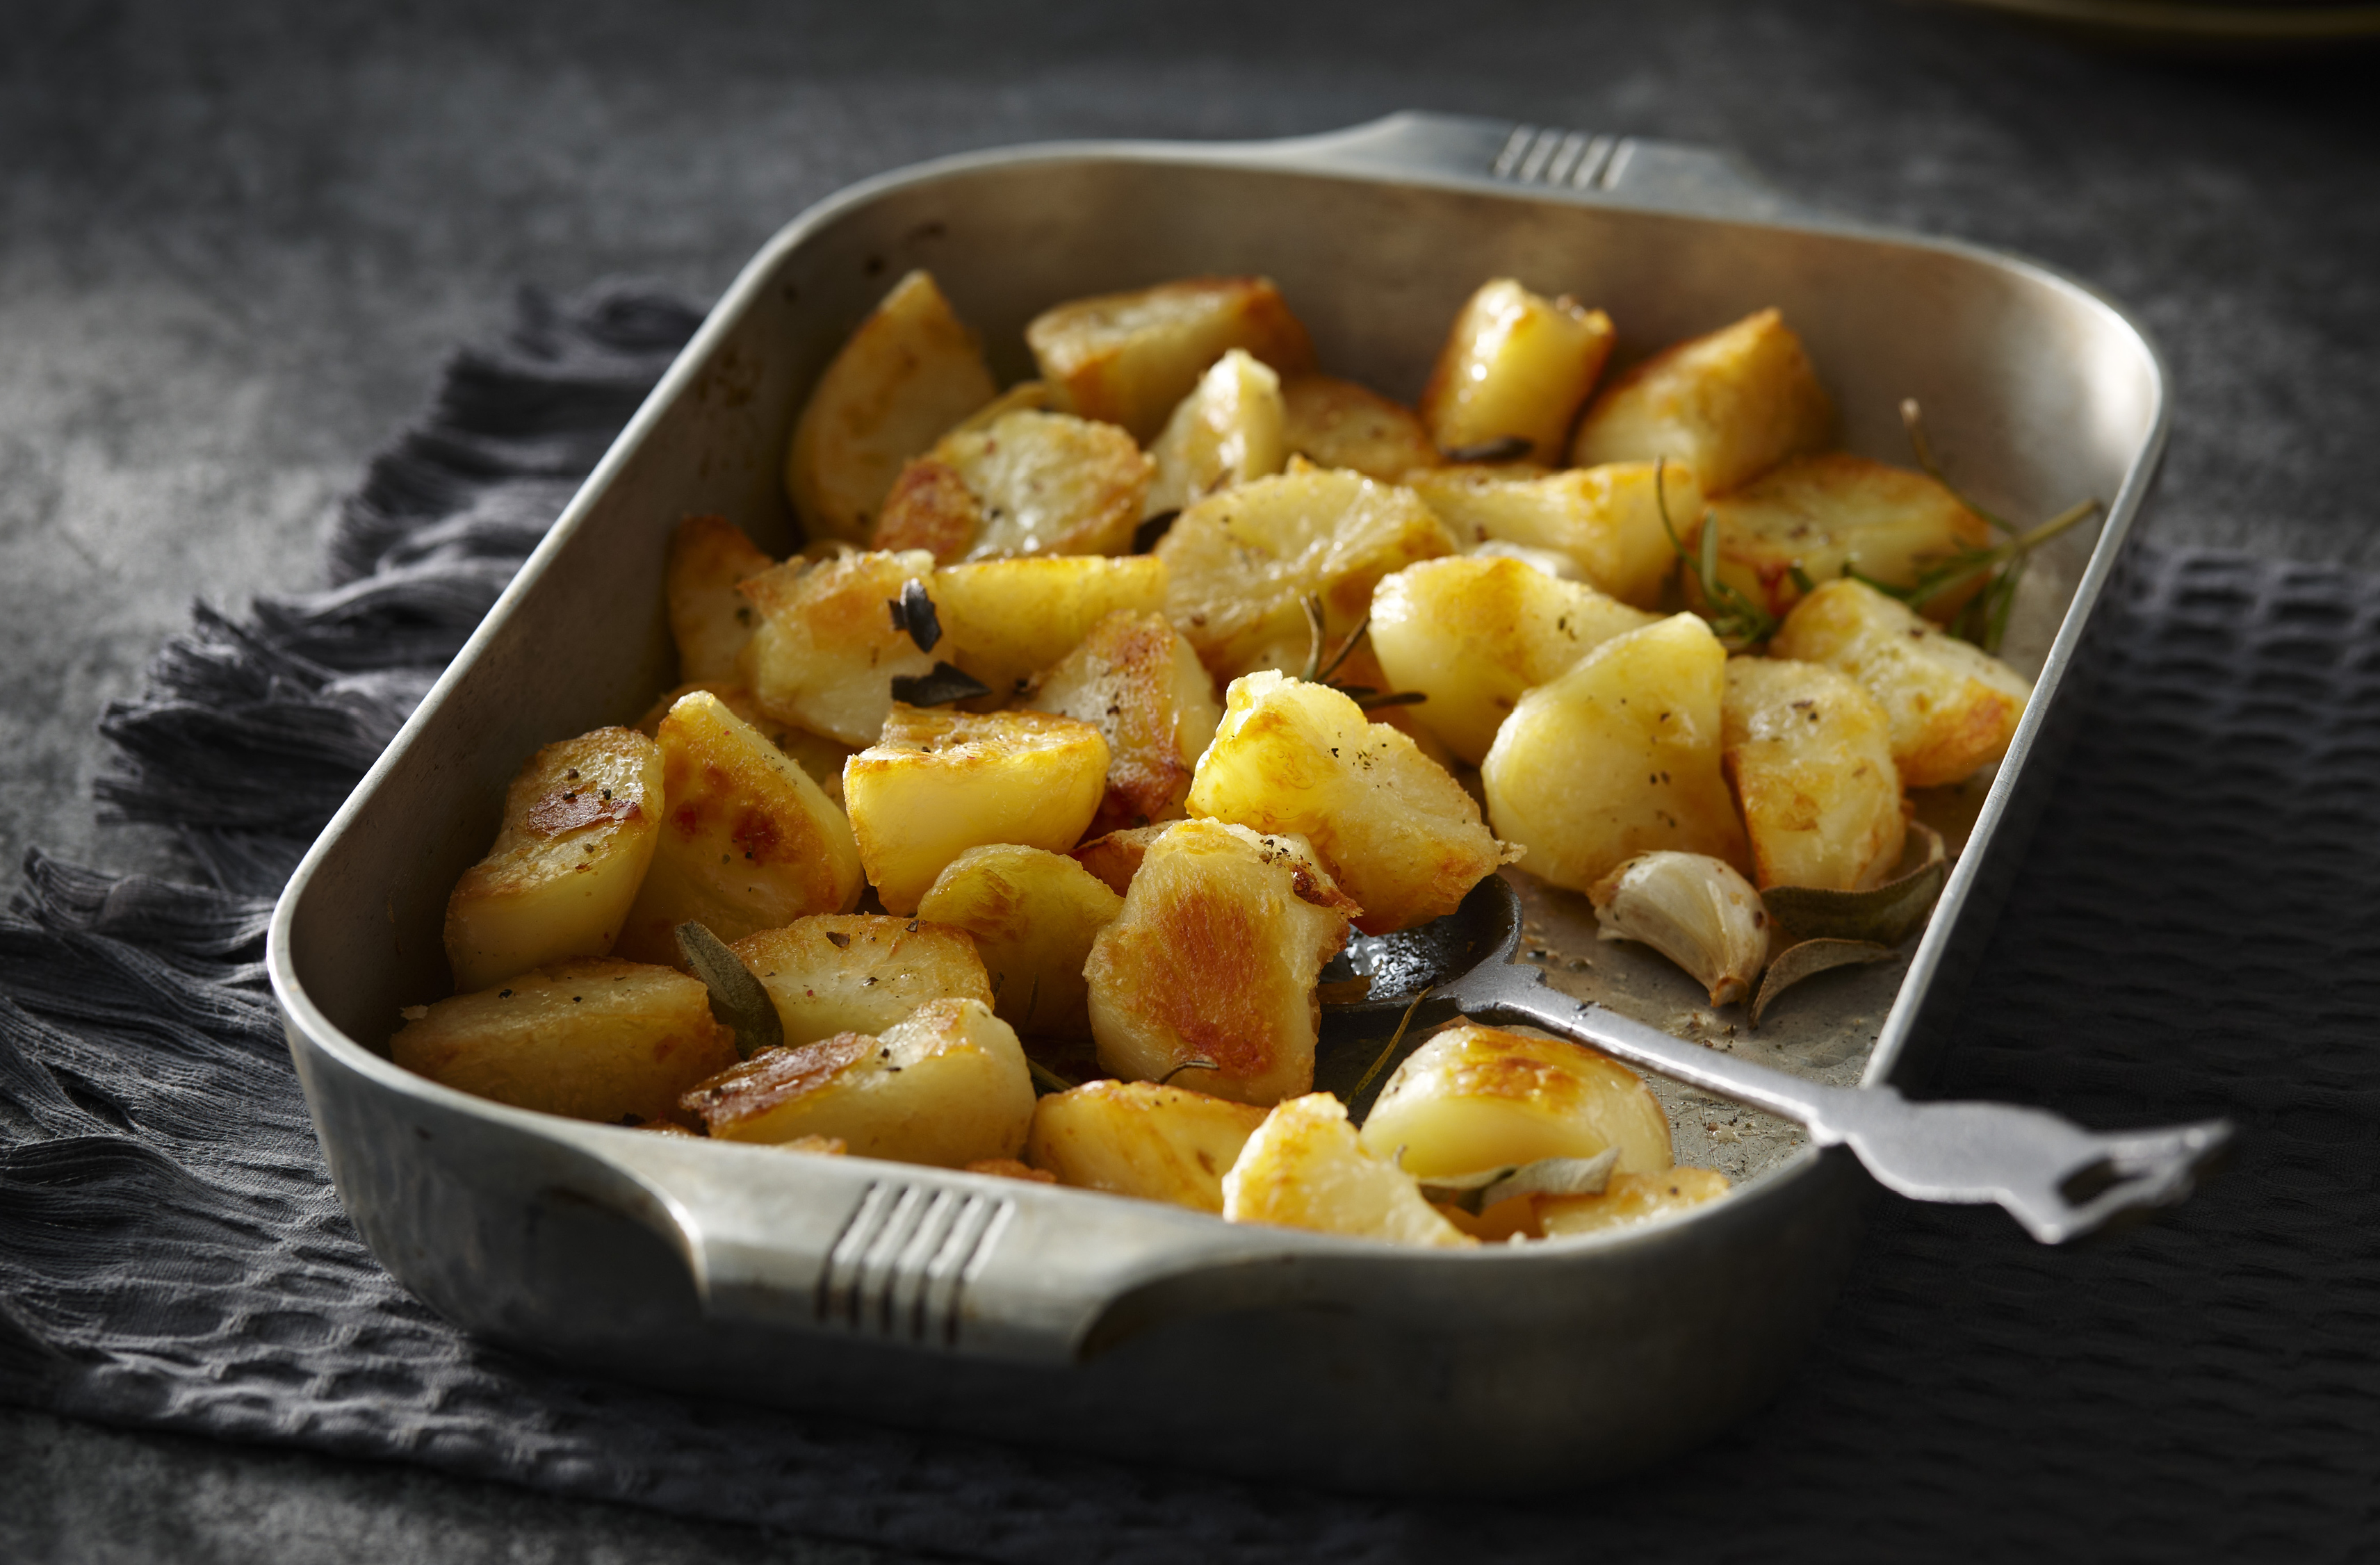 A baking pan of golden potato chunks with herbs, slow-roasted in goose fat